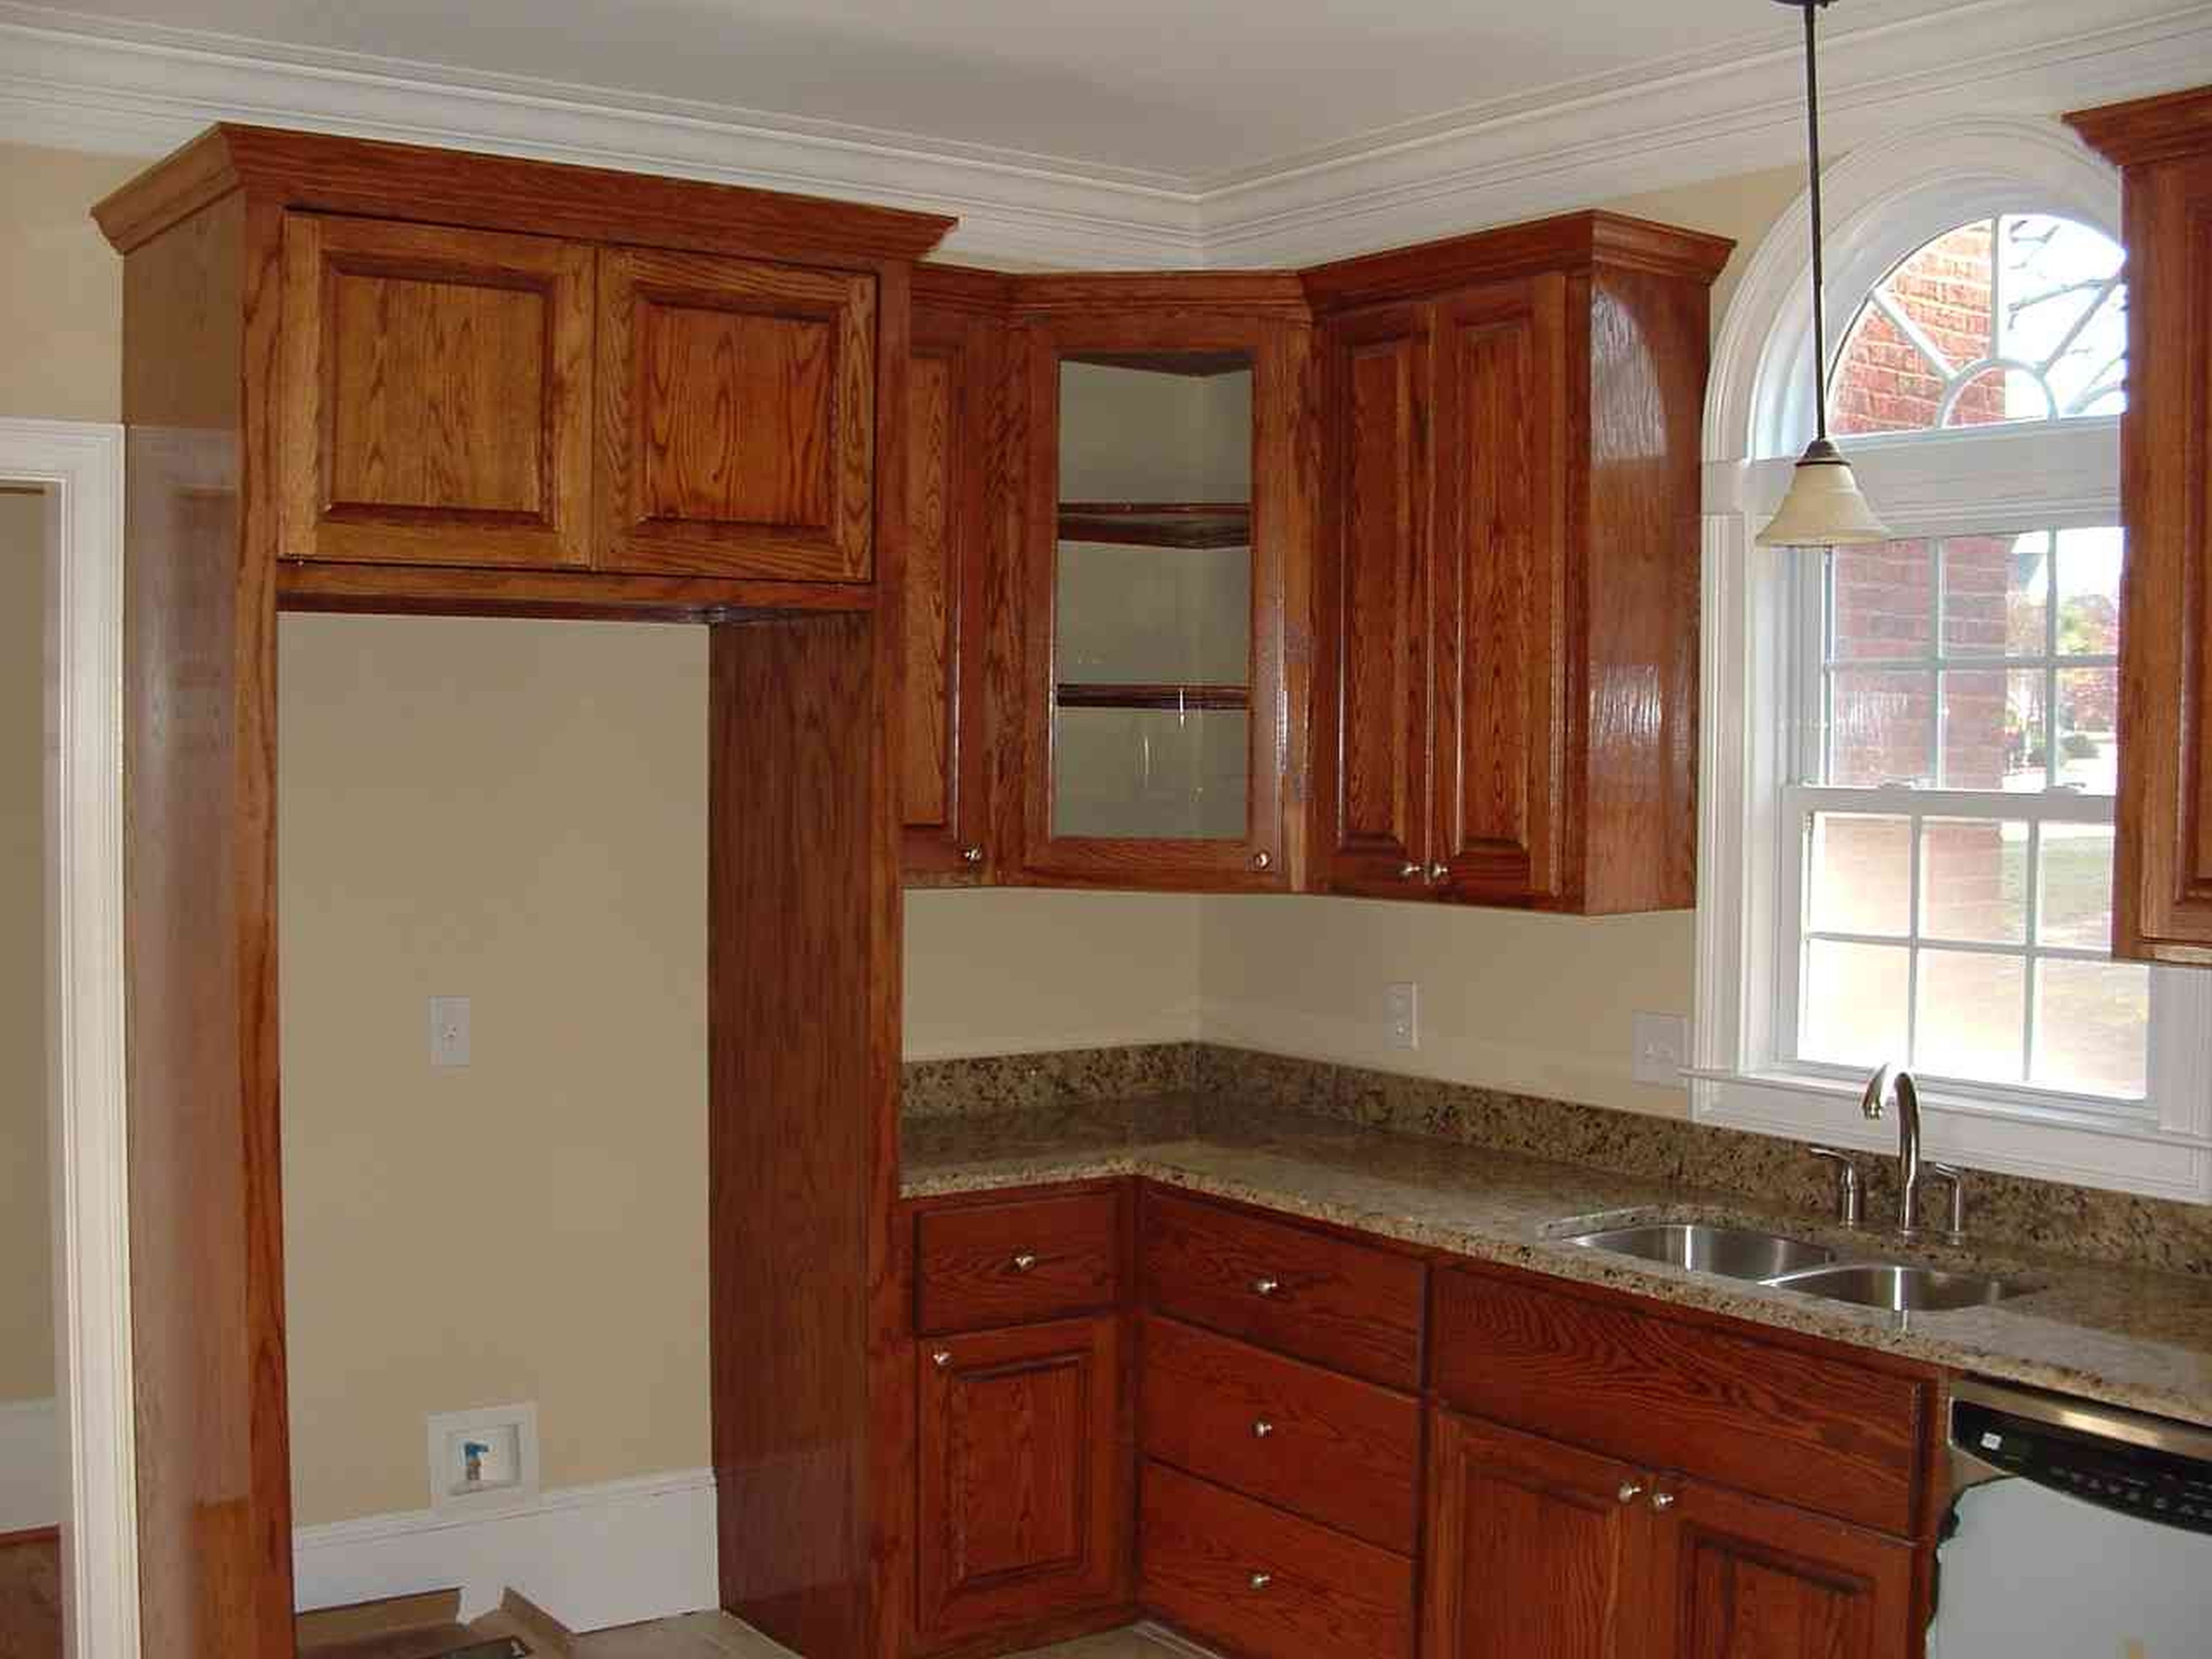 Configuration For Above Fridge And Corner West Wall Cabinet Placement Kitchen Cabinet Crown Molding Cheap Kitchen Cabinets Quality Kitchen Cabinets